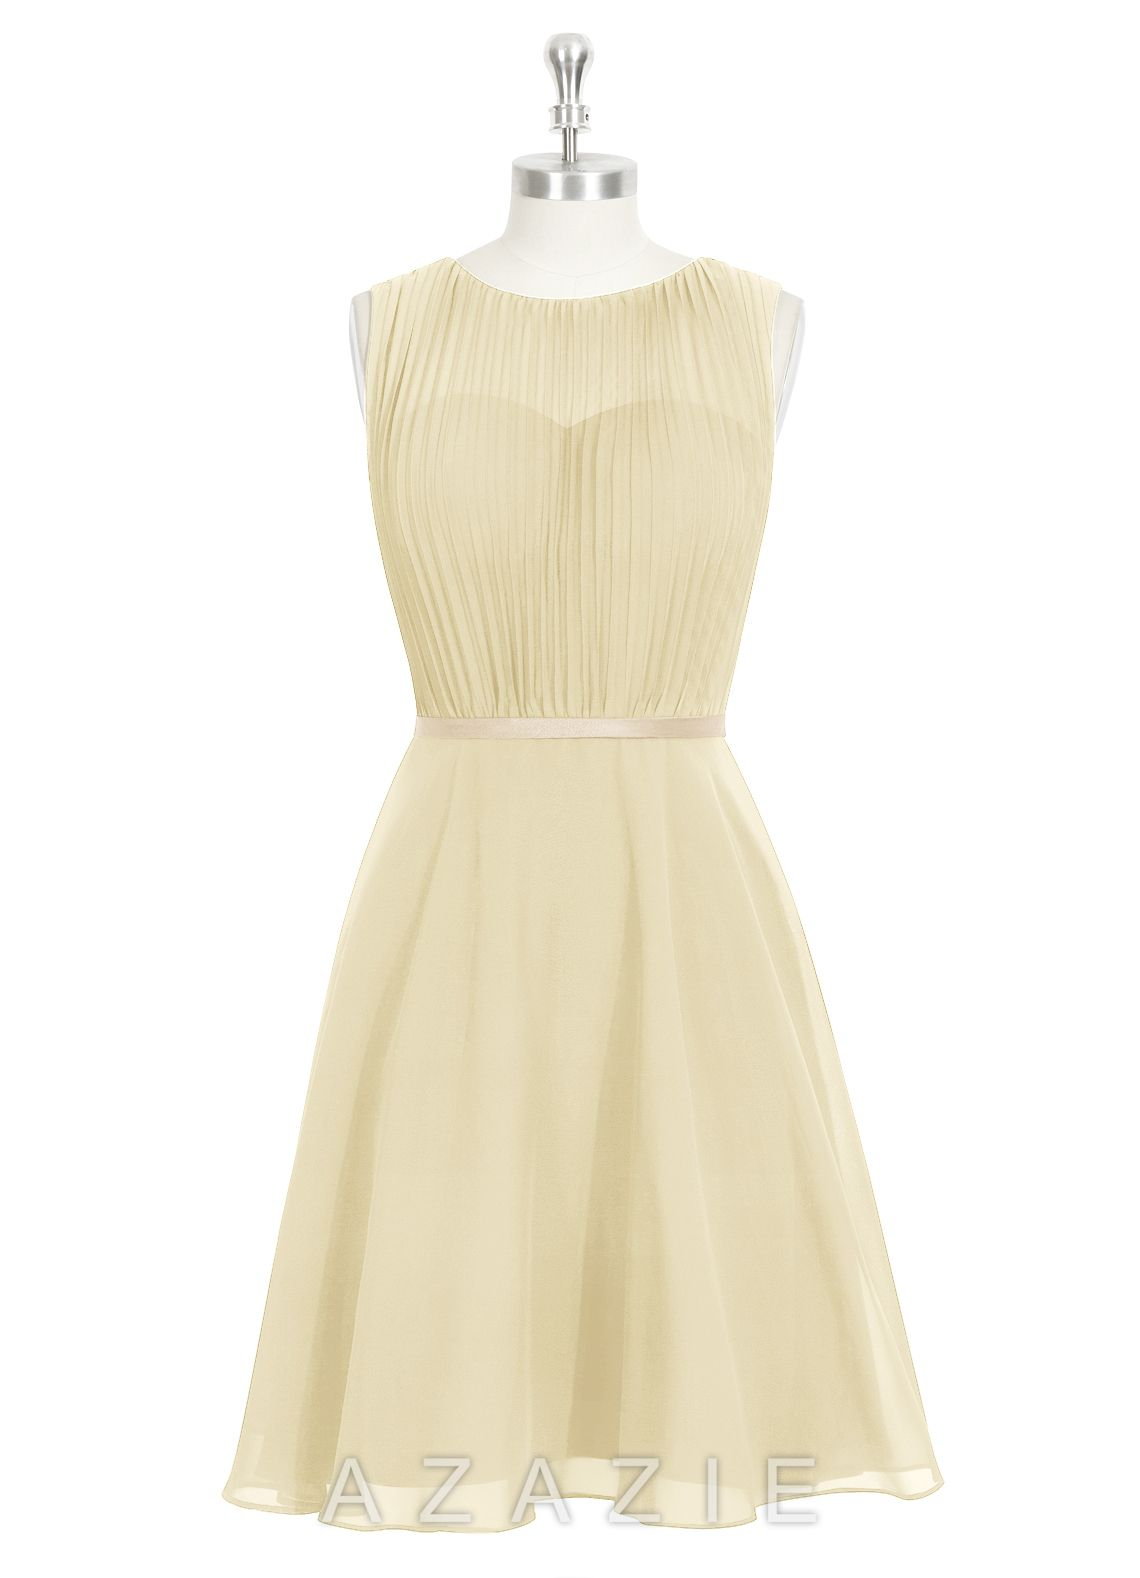 77936fe5fdcf3 Shop Azazie Bridesmaid Dress - Mariam in Chiffon. Find the perfect made-to-